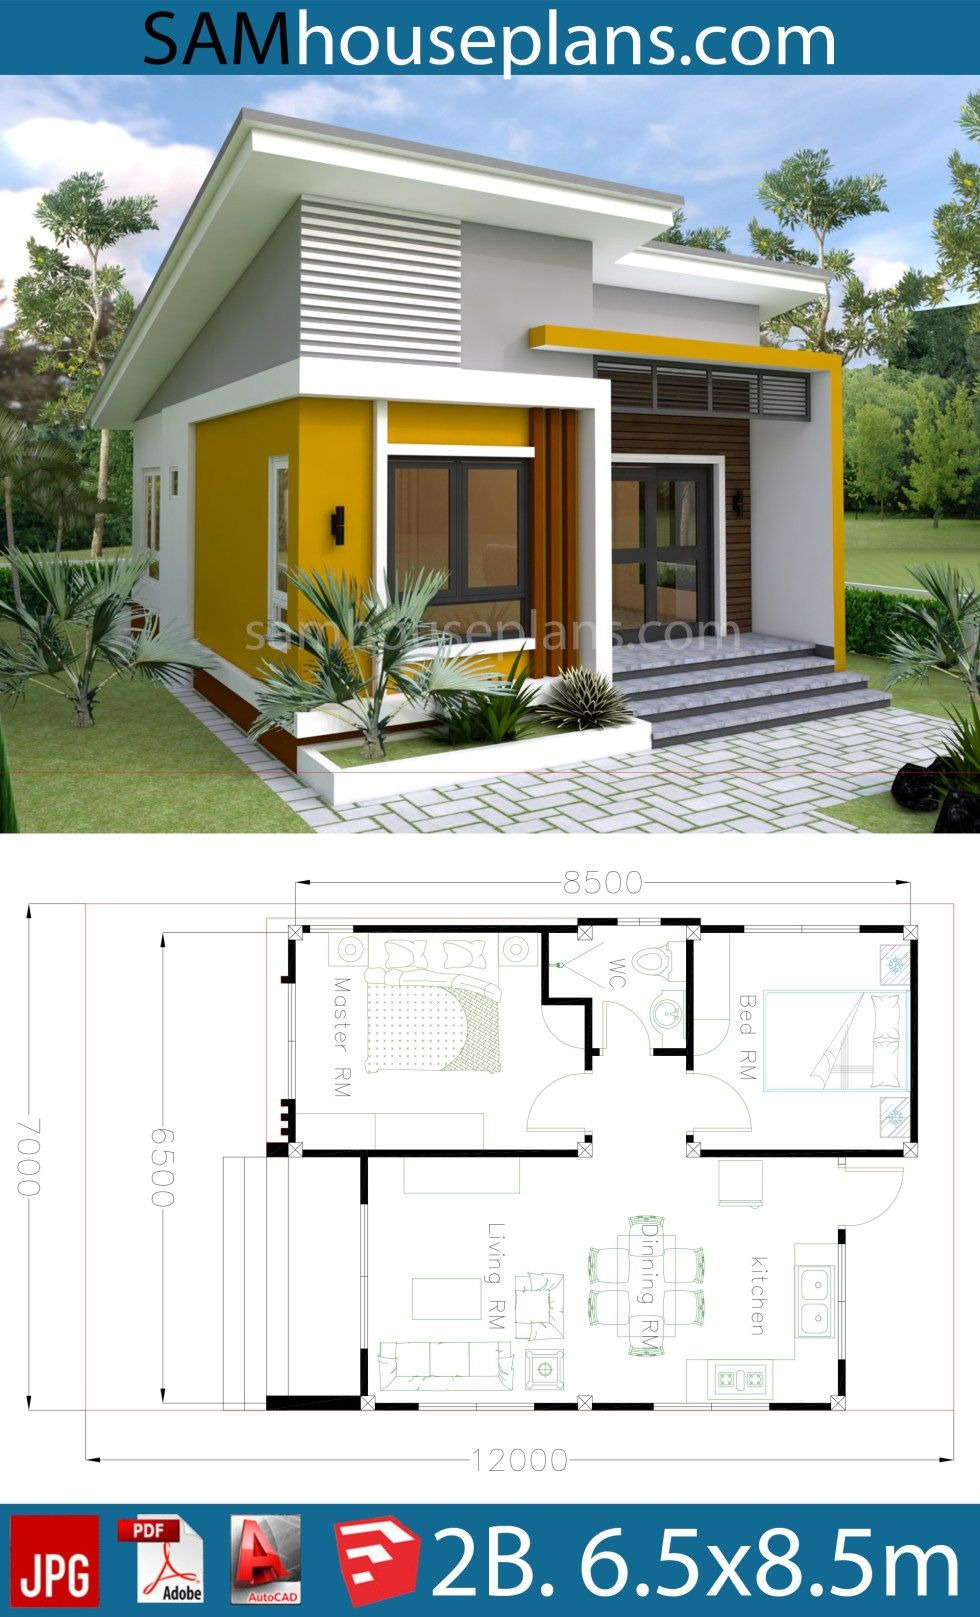 Simple Modern House Plans Photos Inspirational House Plans 6 5x8 5m with 2 Bedrooms In 2020